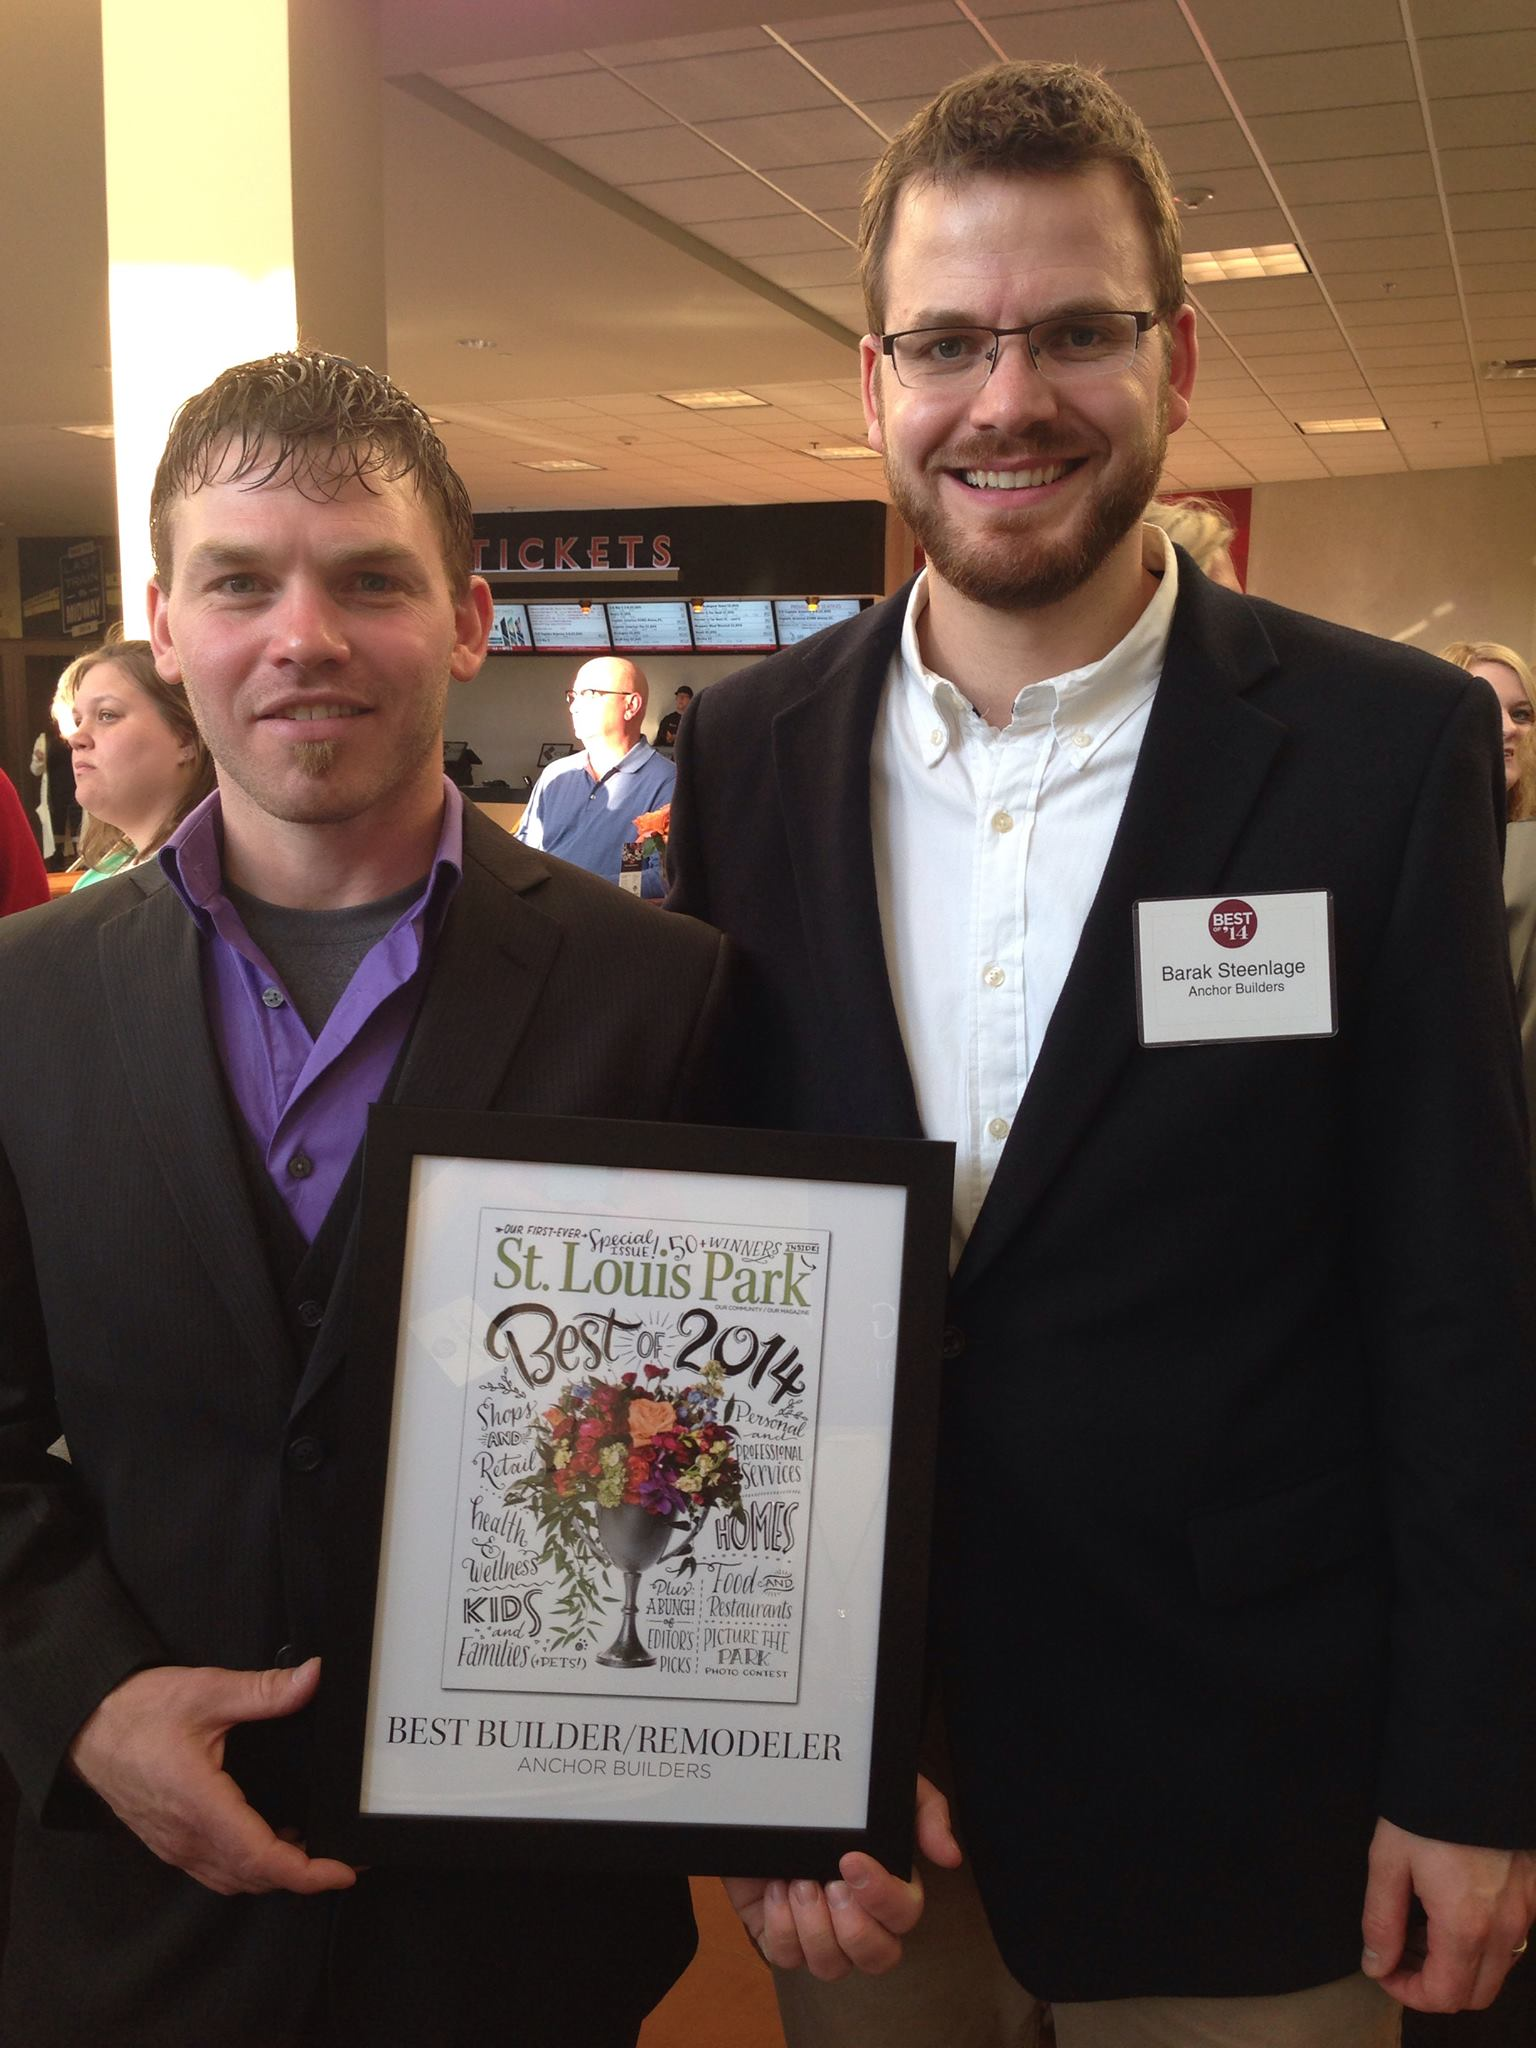 Best Builder/Remodeler of 2014- St. Louis Park Magazine